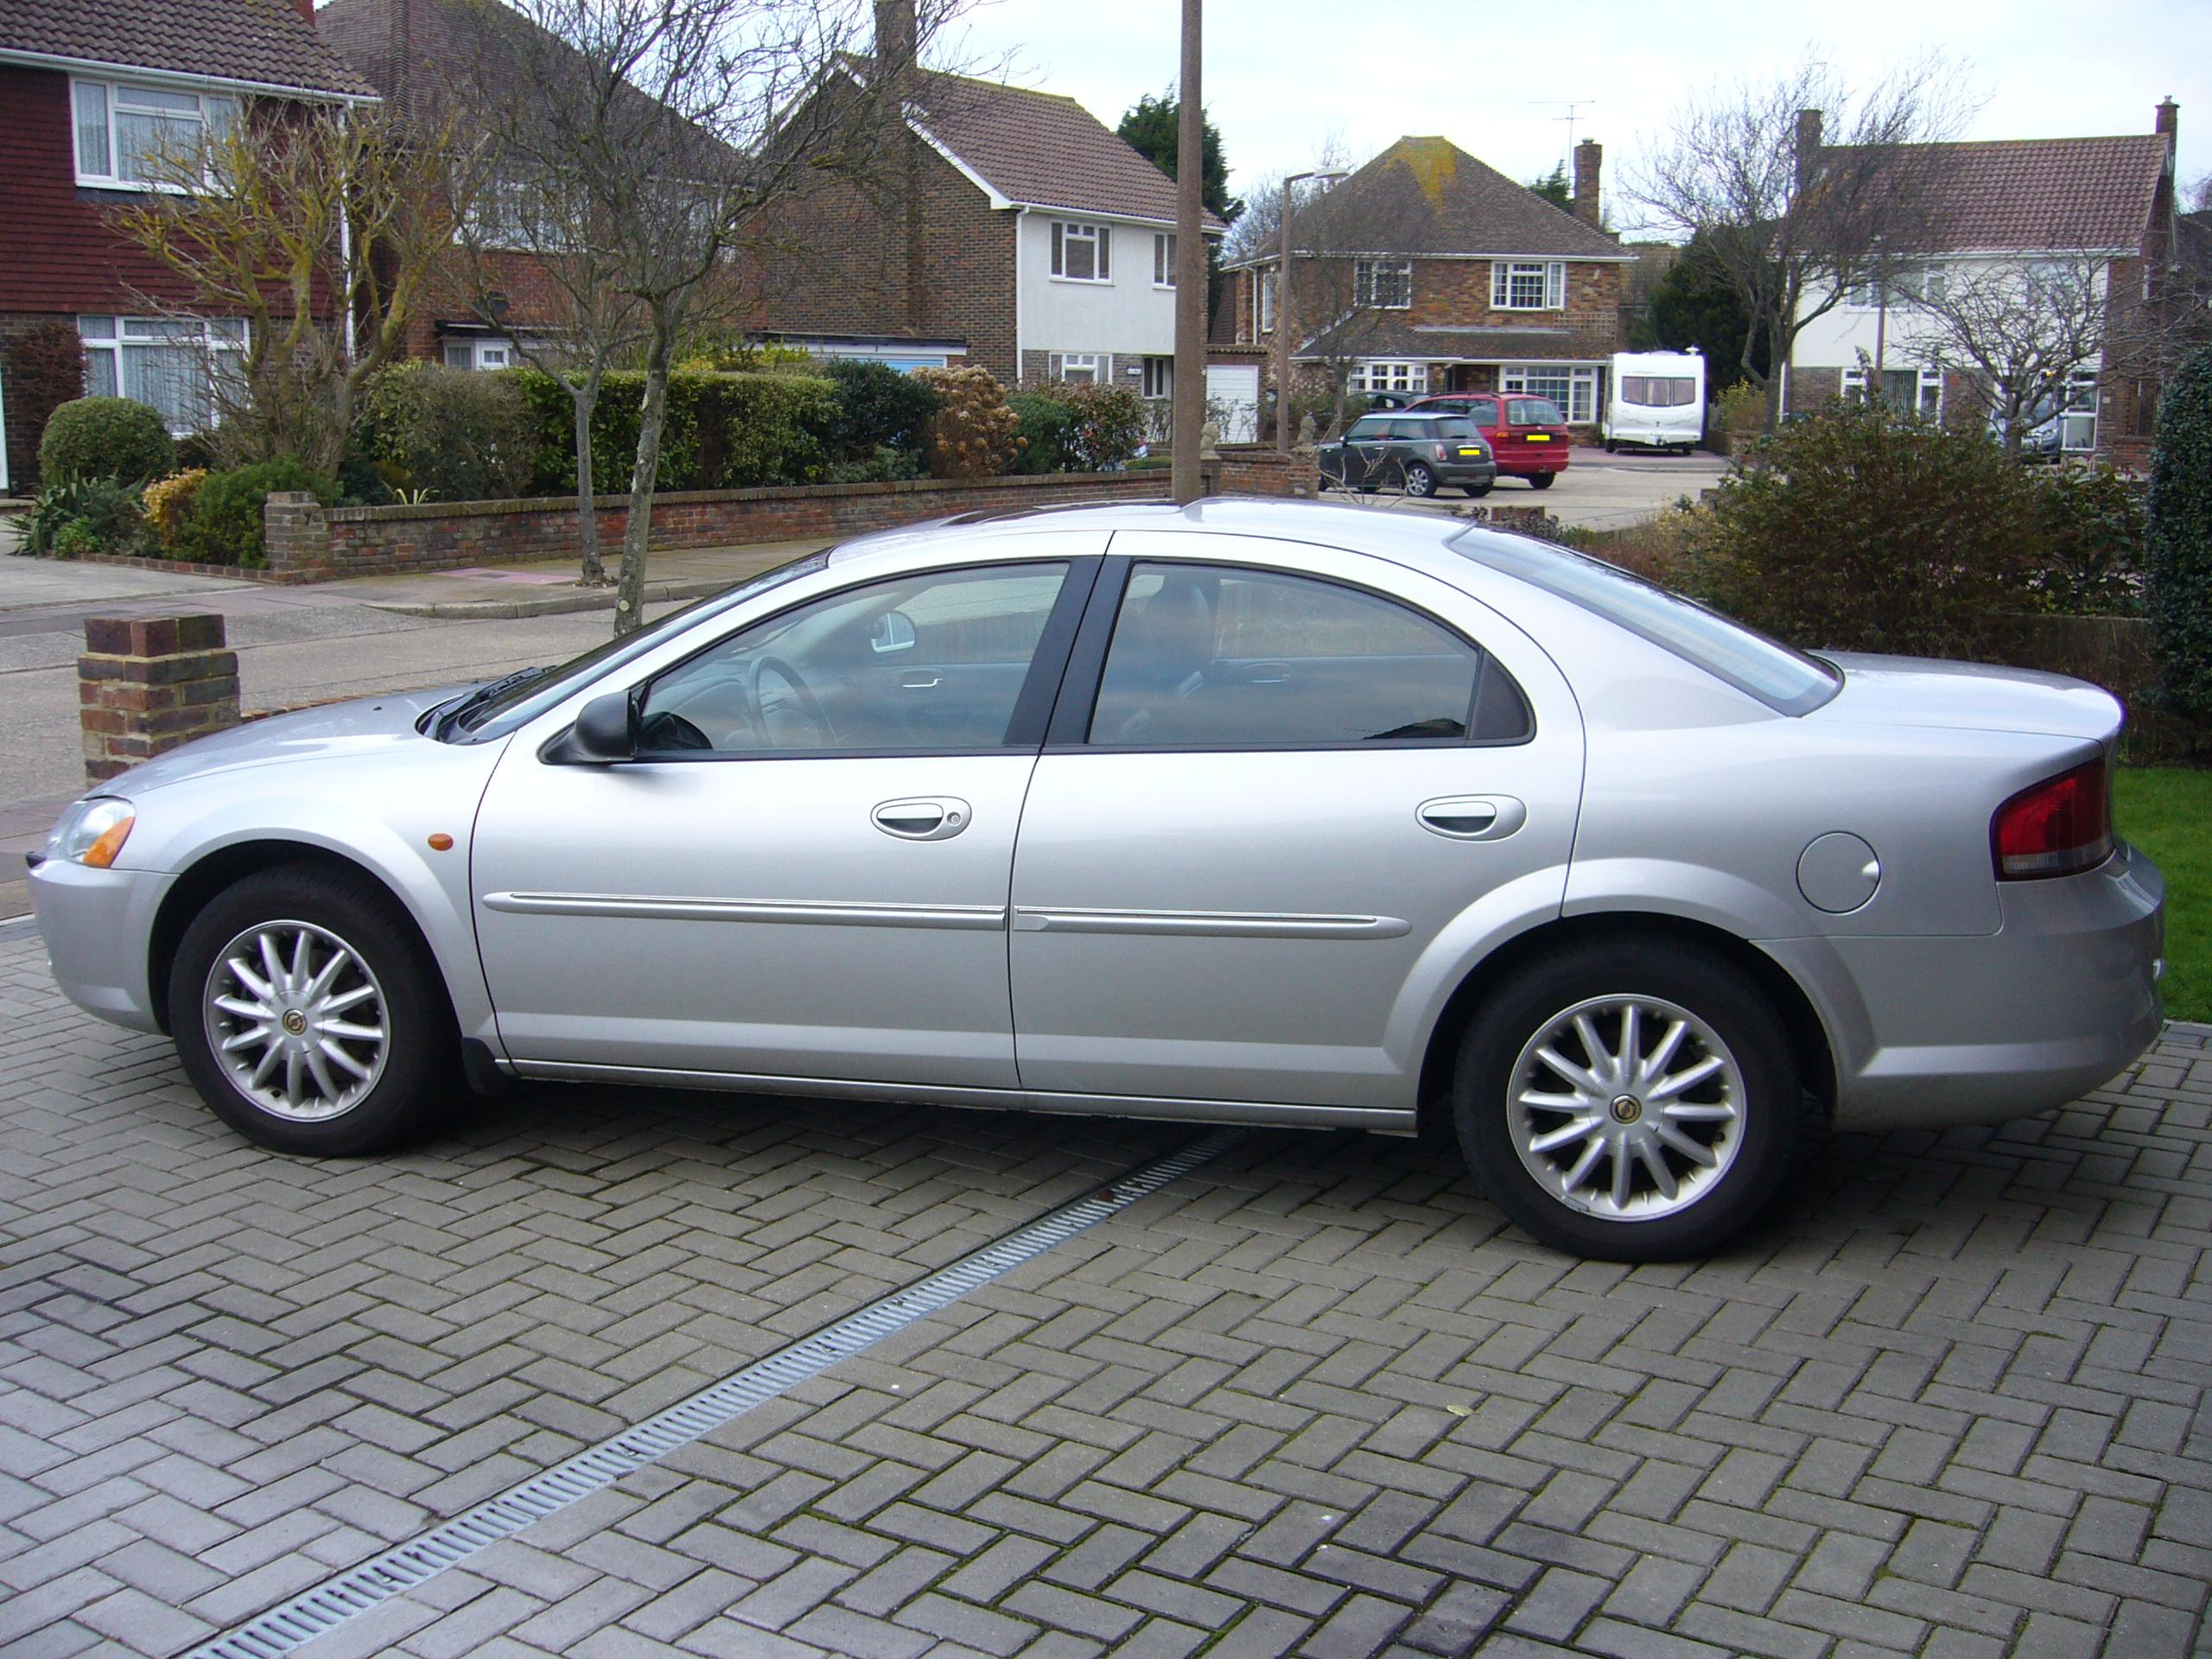 File:2003 Chrysler Sebring sedan (European model) - 1.JPG - Wikipedia ...